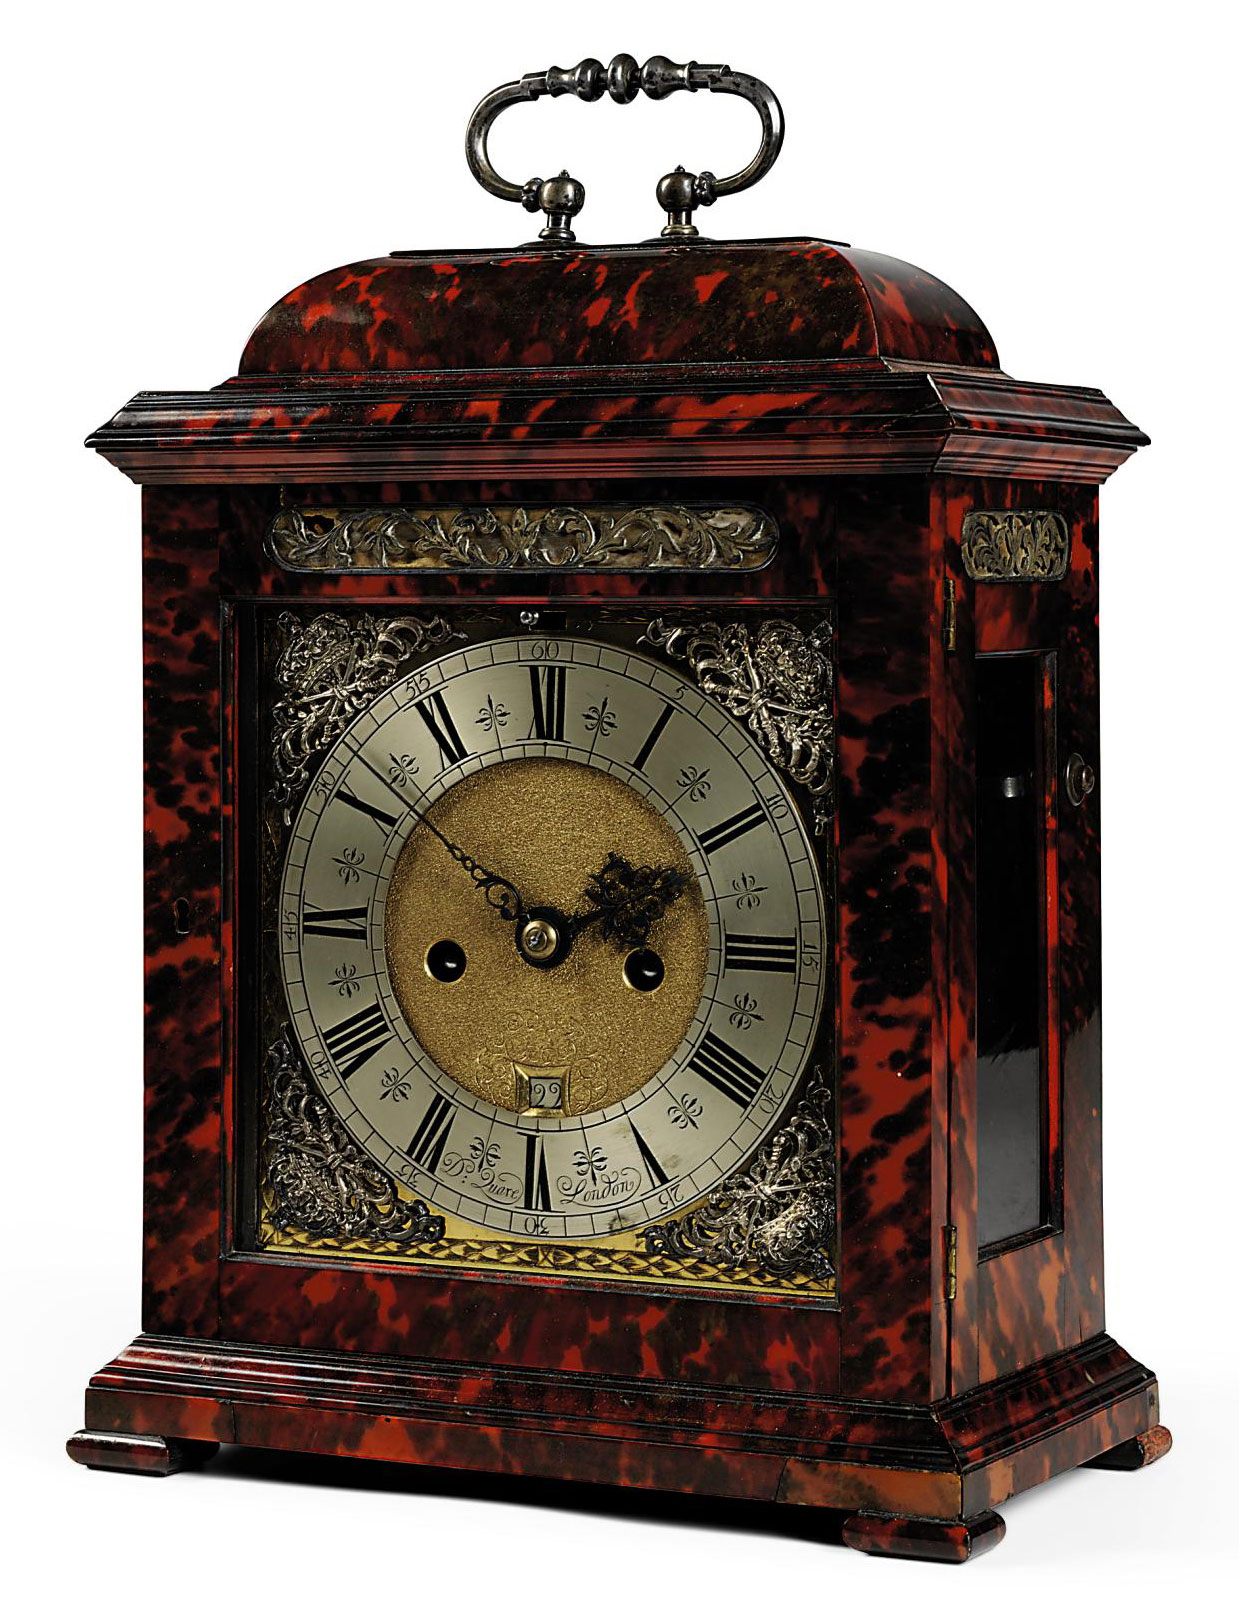 A WILLIAM AND MARY SILVER-MOUNTED RED TORTOISESHELL STRIKING TABLE CLOCK